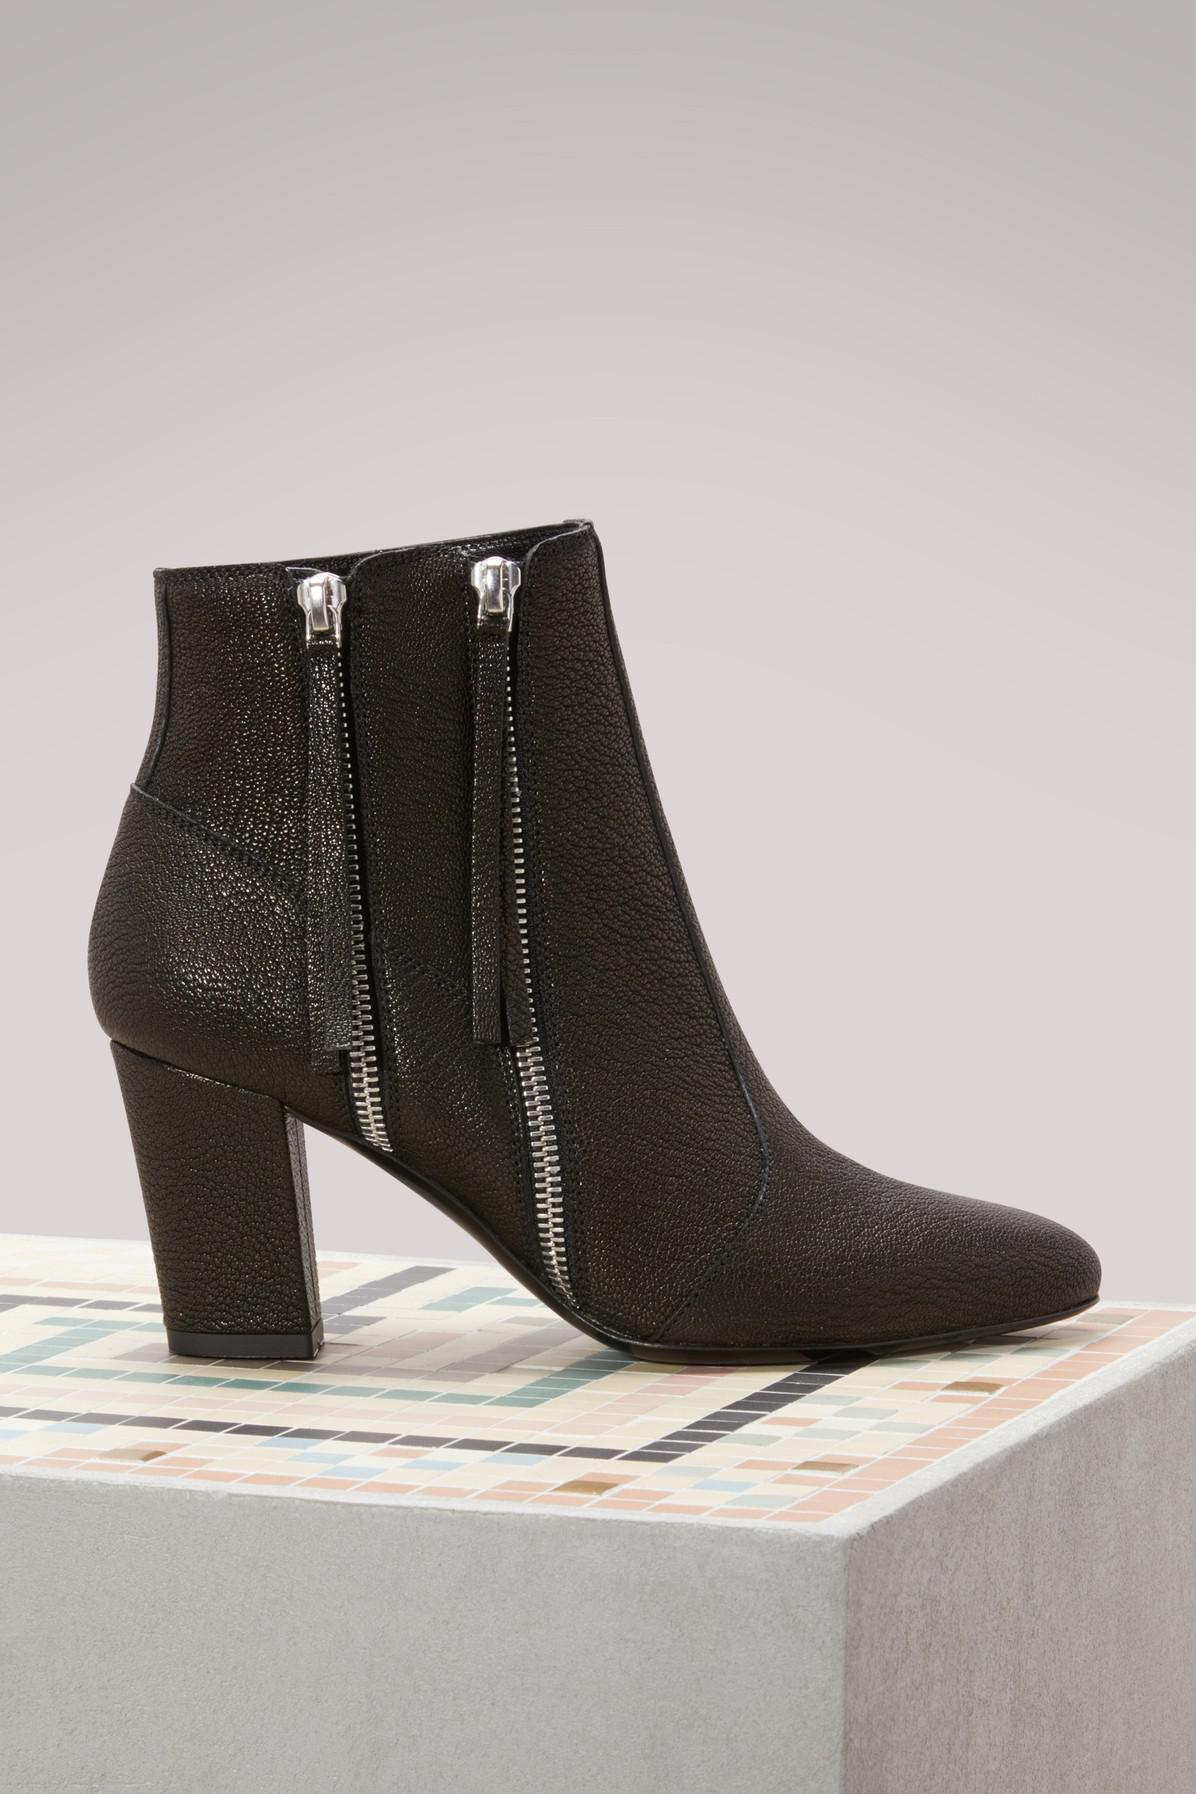 MICHEL VIVIEN Leather Ankle Boots